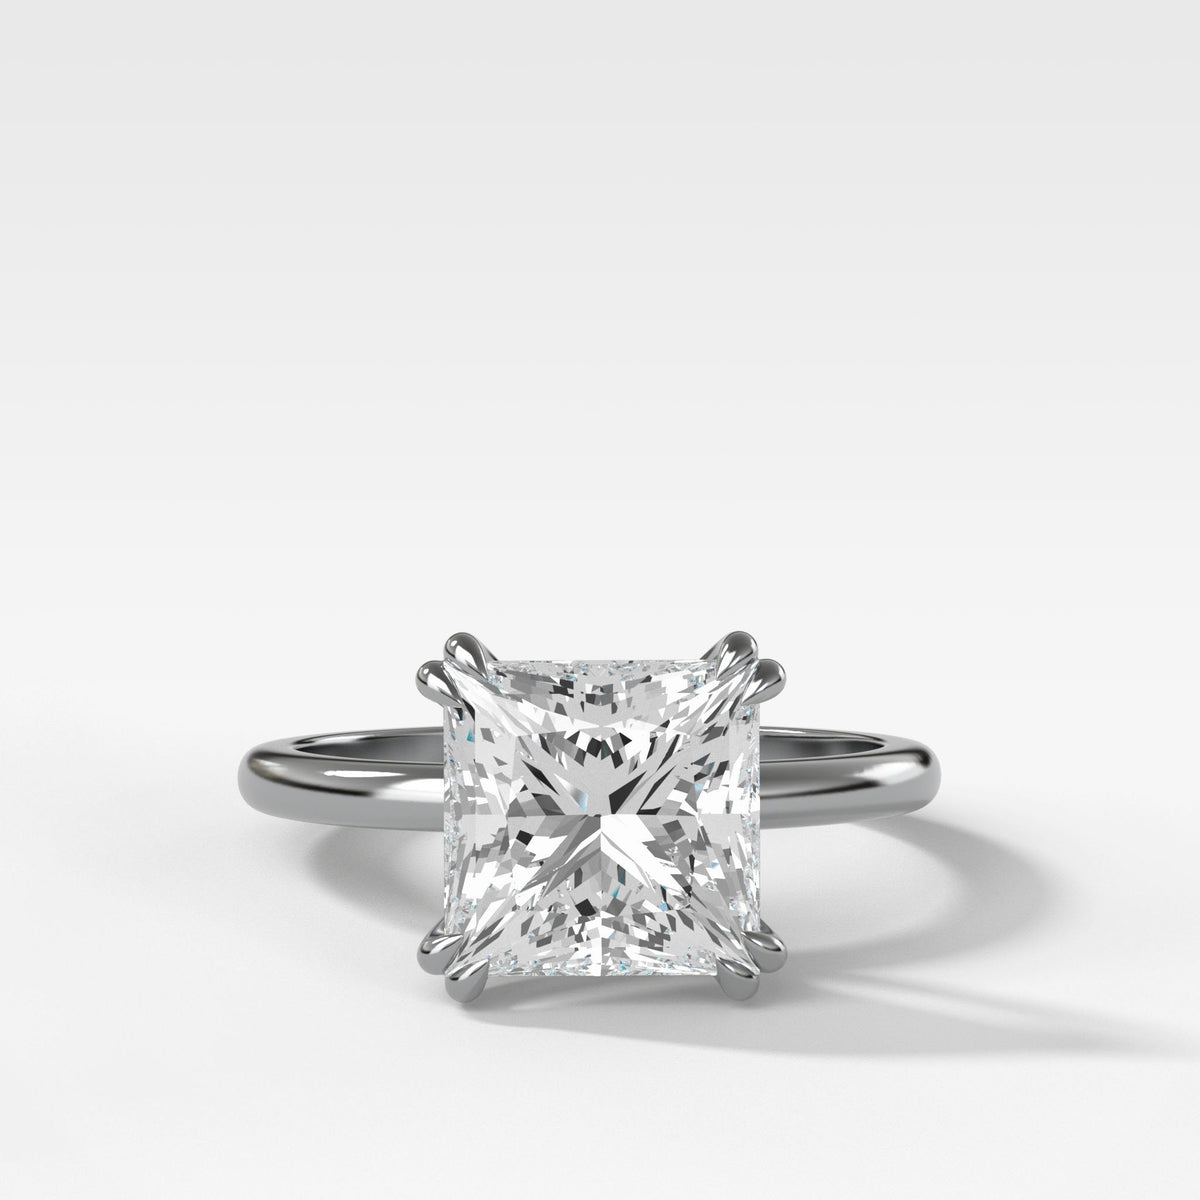 Signature Cathedral Solitaire With Princess Cut In White Gold By Good Stone